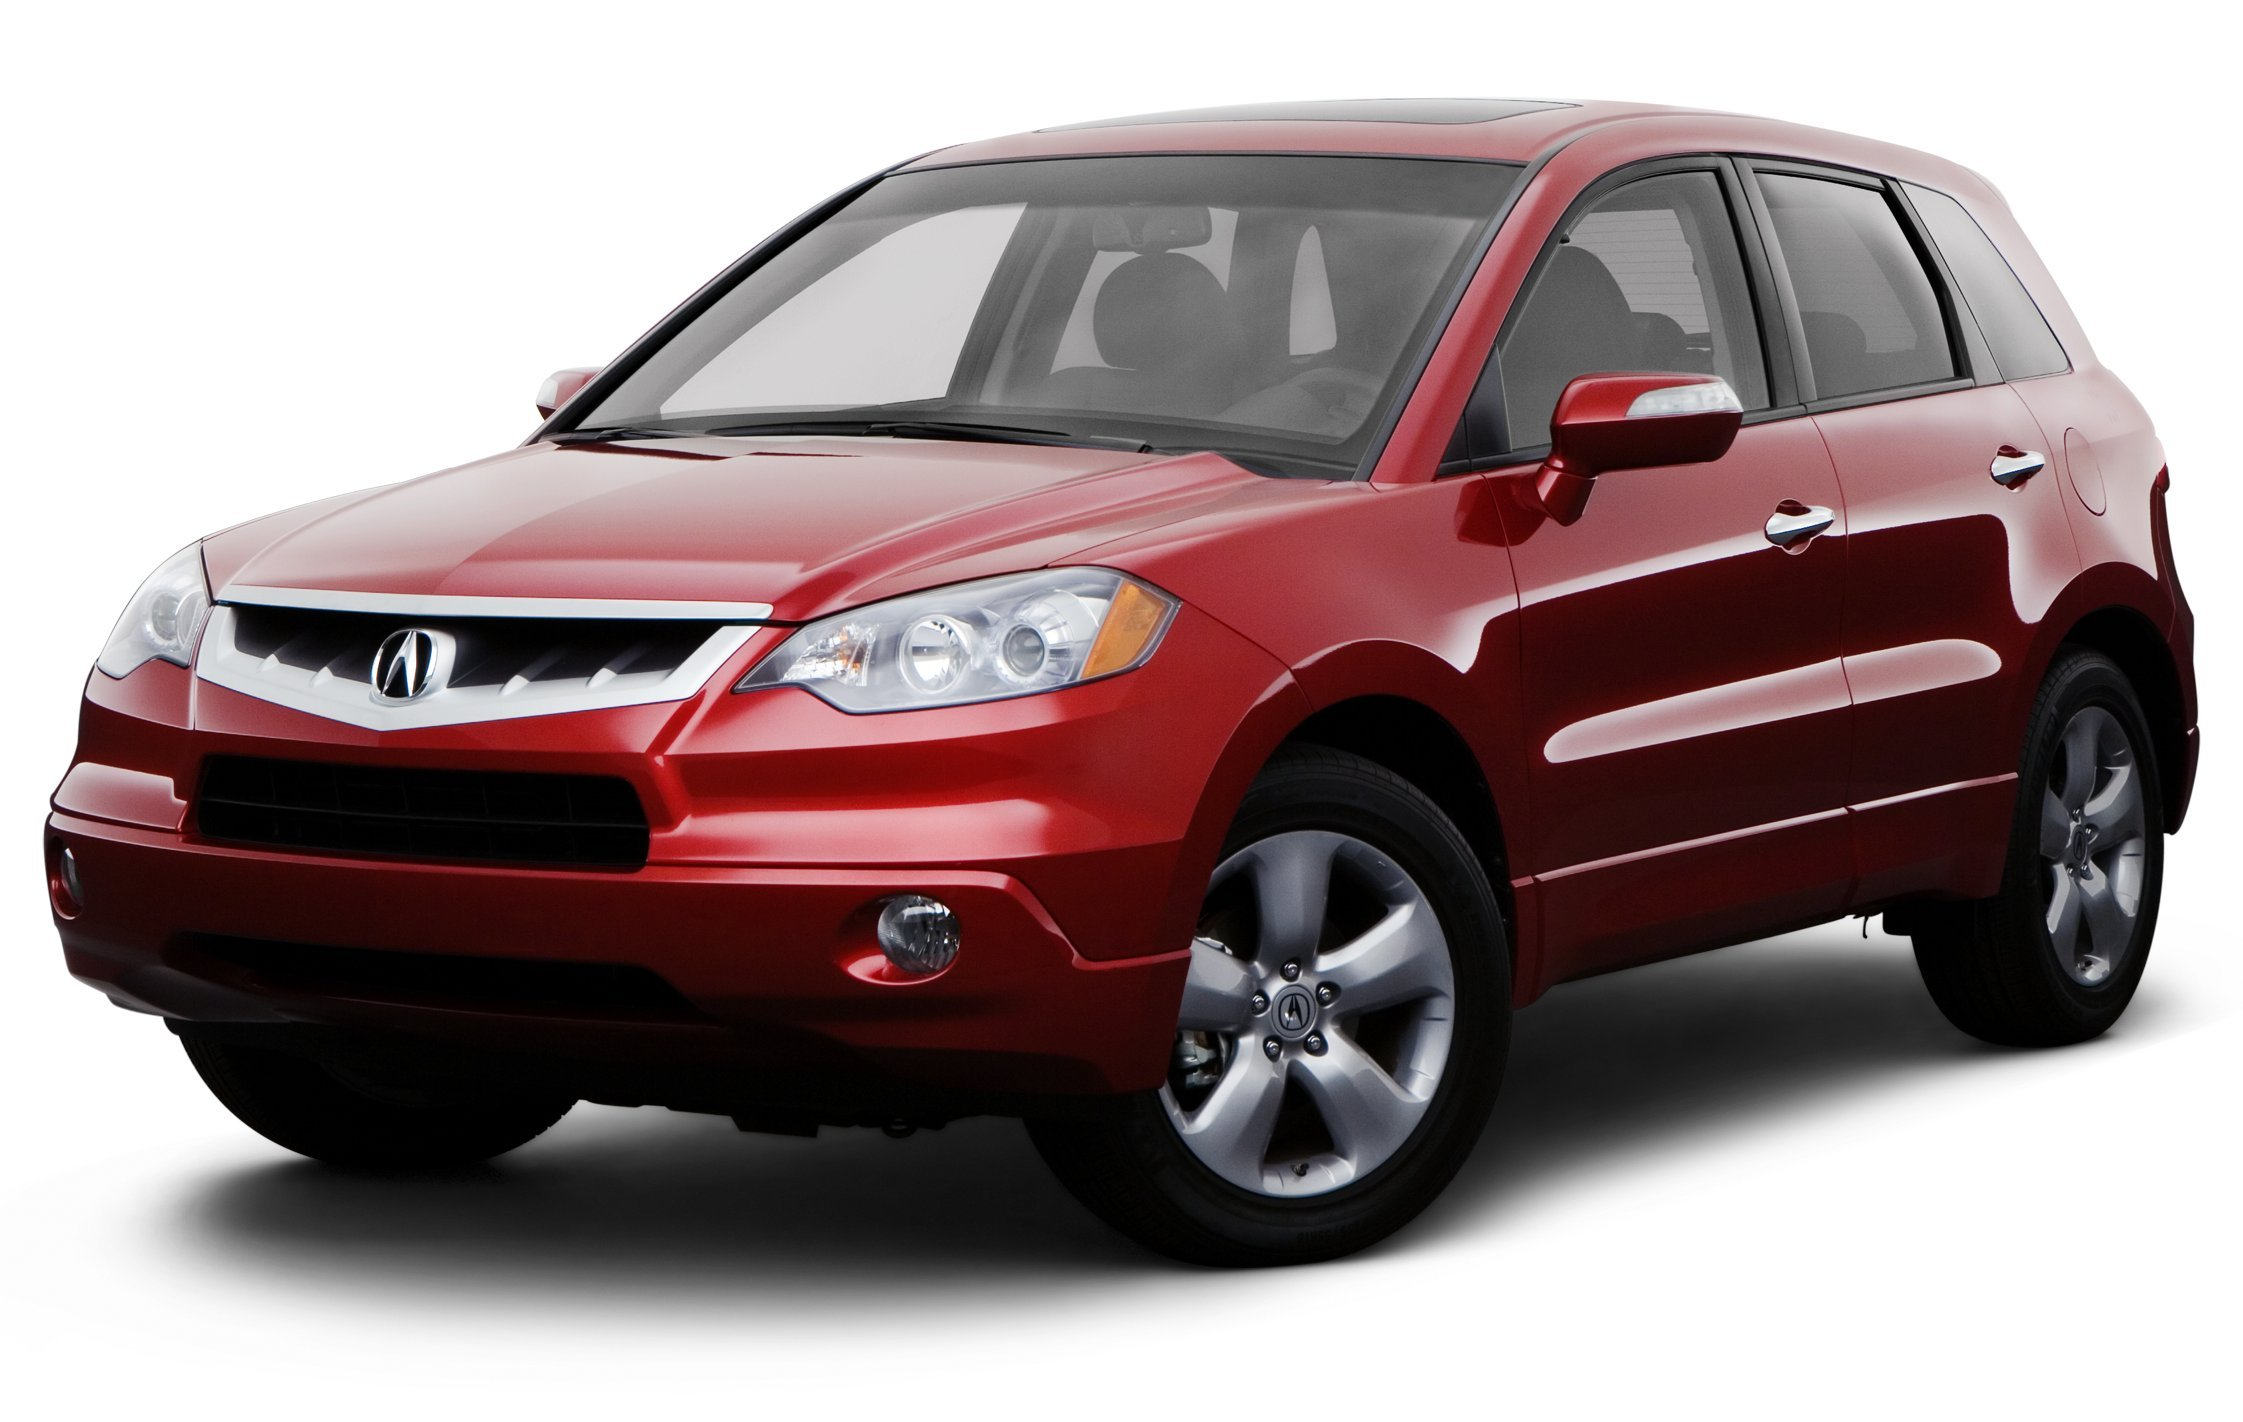 Amazon 2008 Acura RDX Reviews and Specs Vehicles